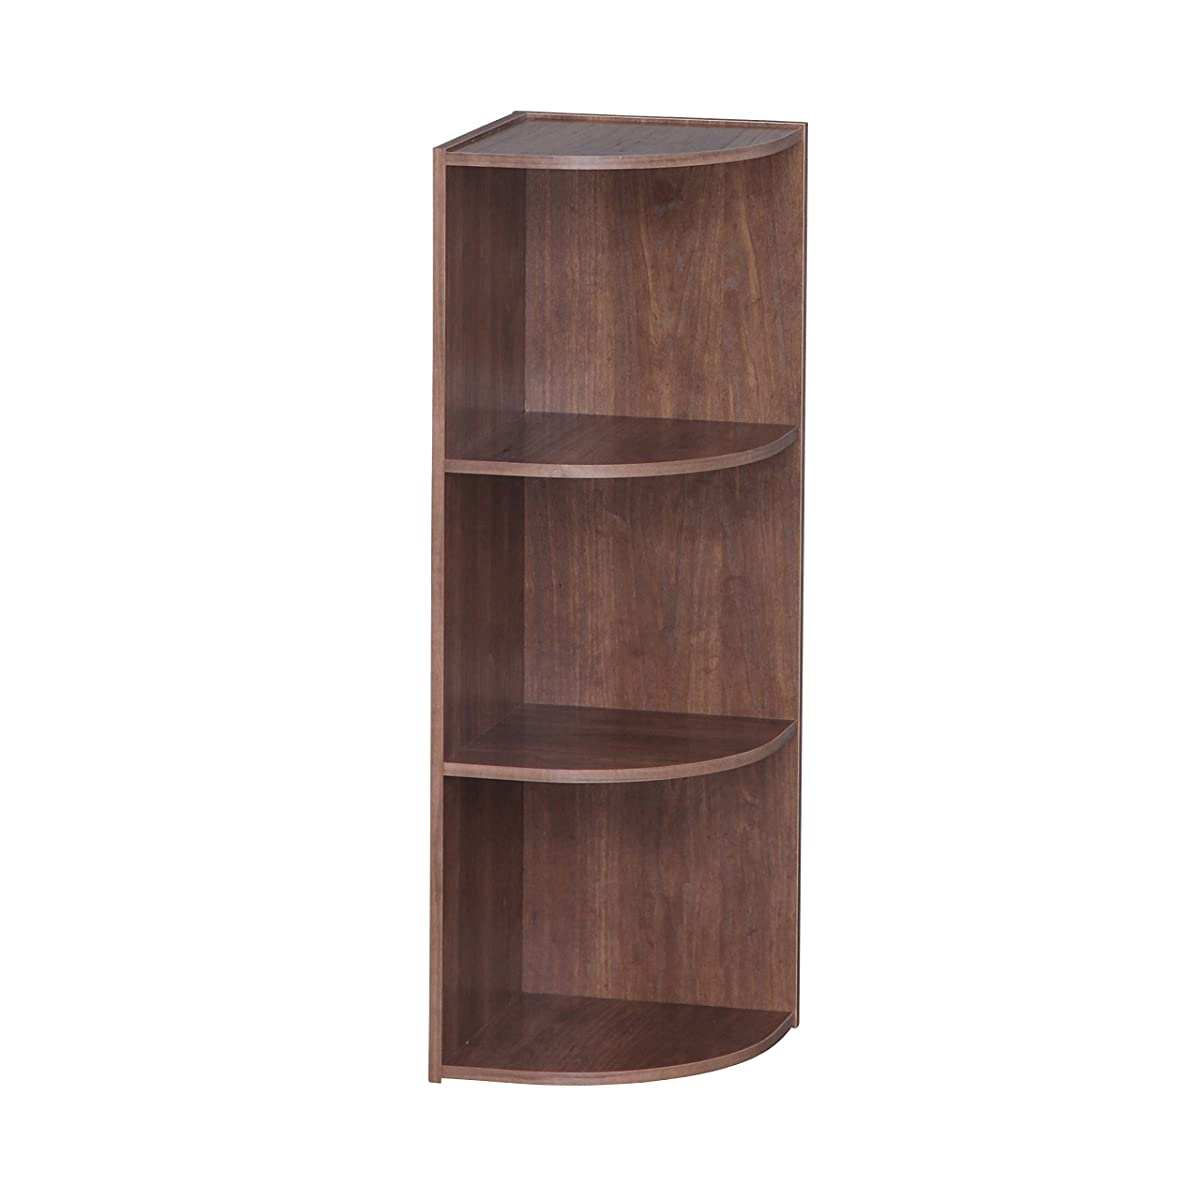 IRIS 3-Tier Corner Curved Shelf Organizer, Brown